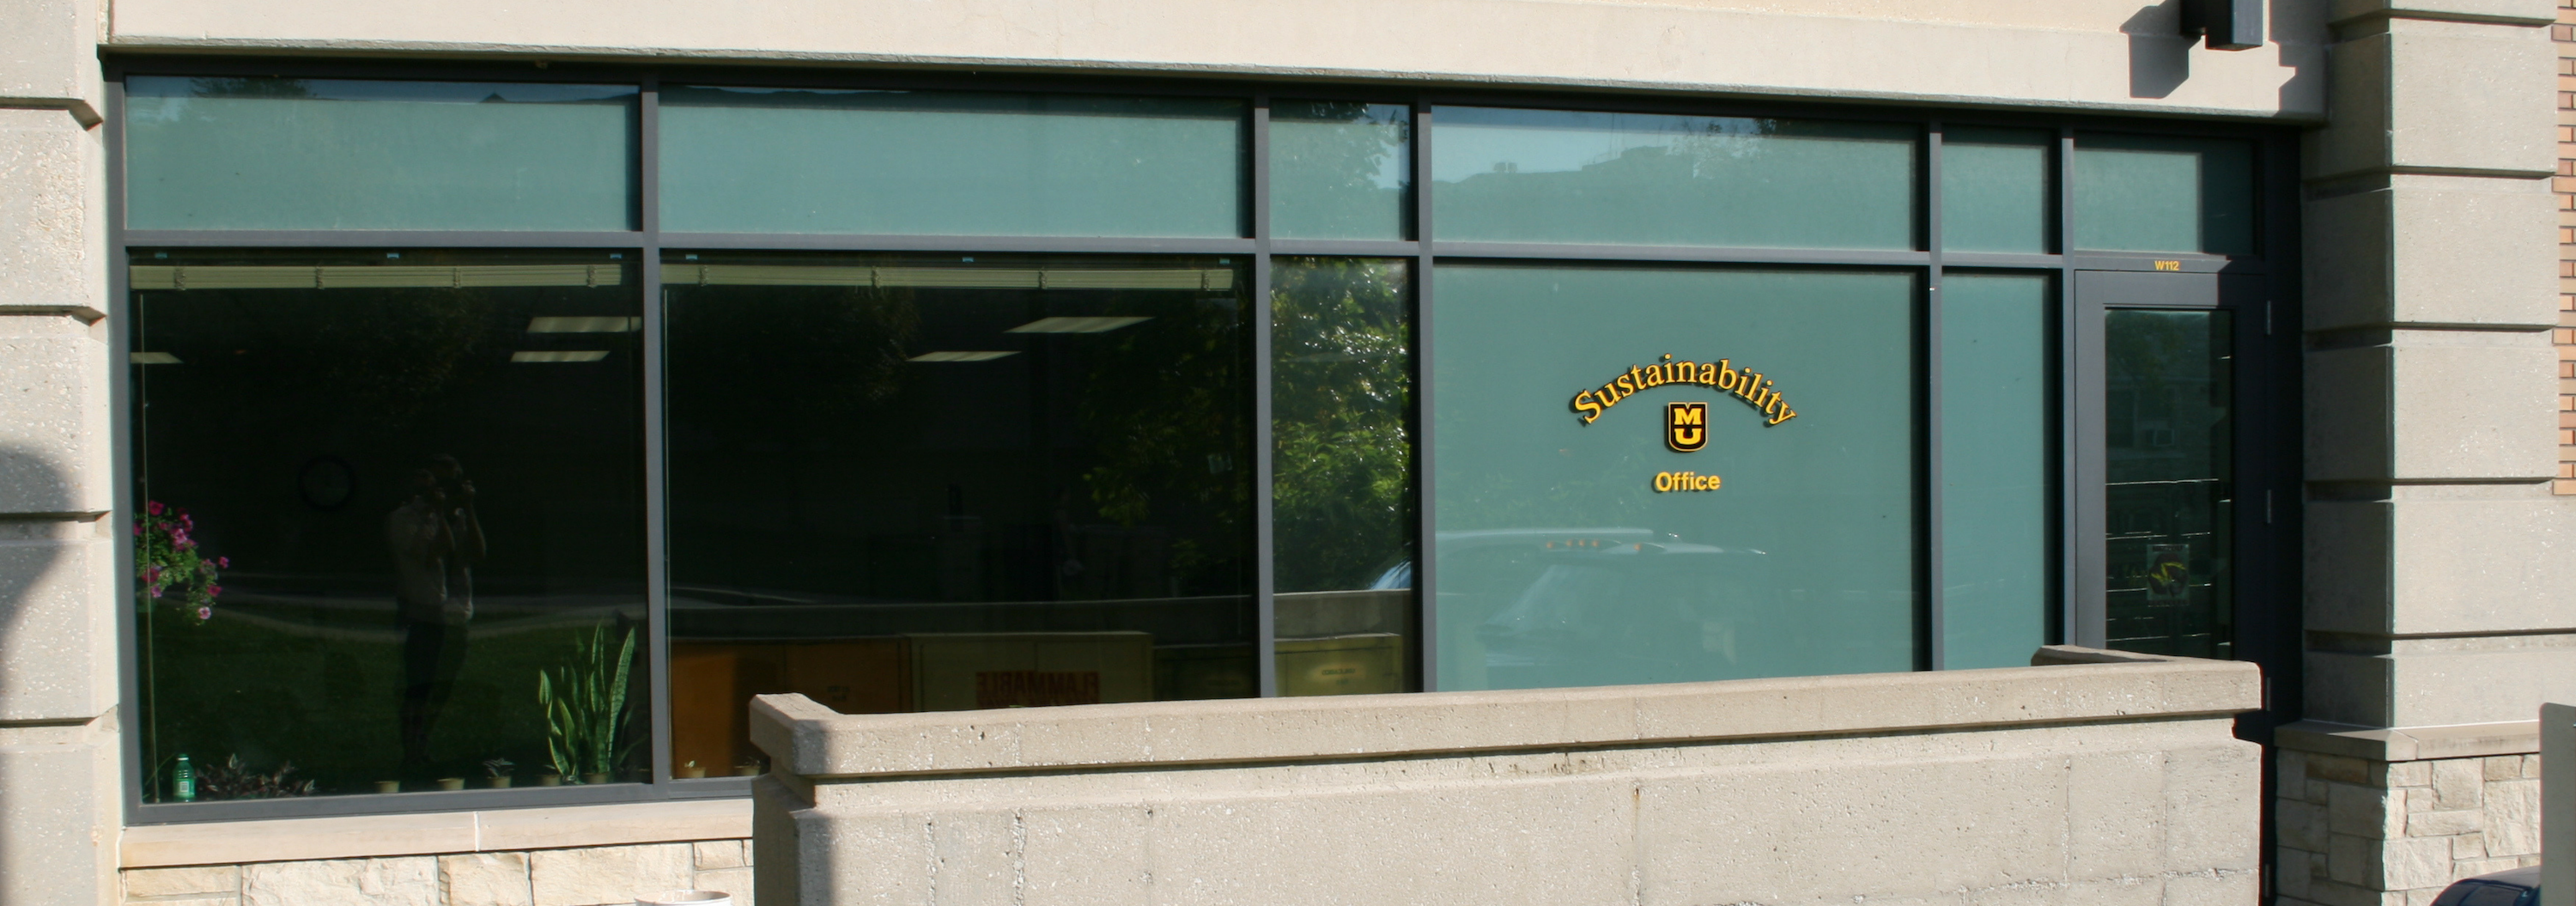 Outdoor view of the MU Sustainability Office.